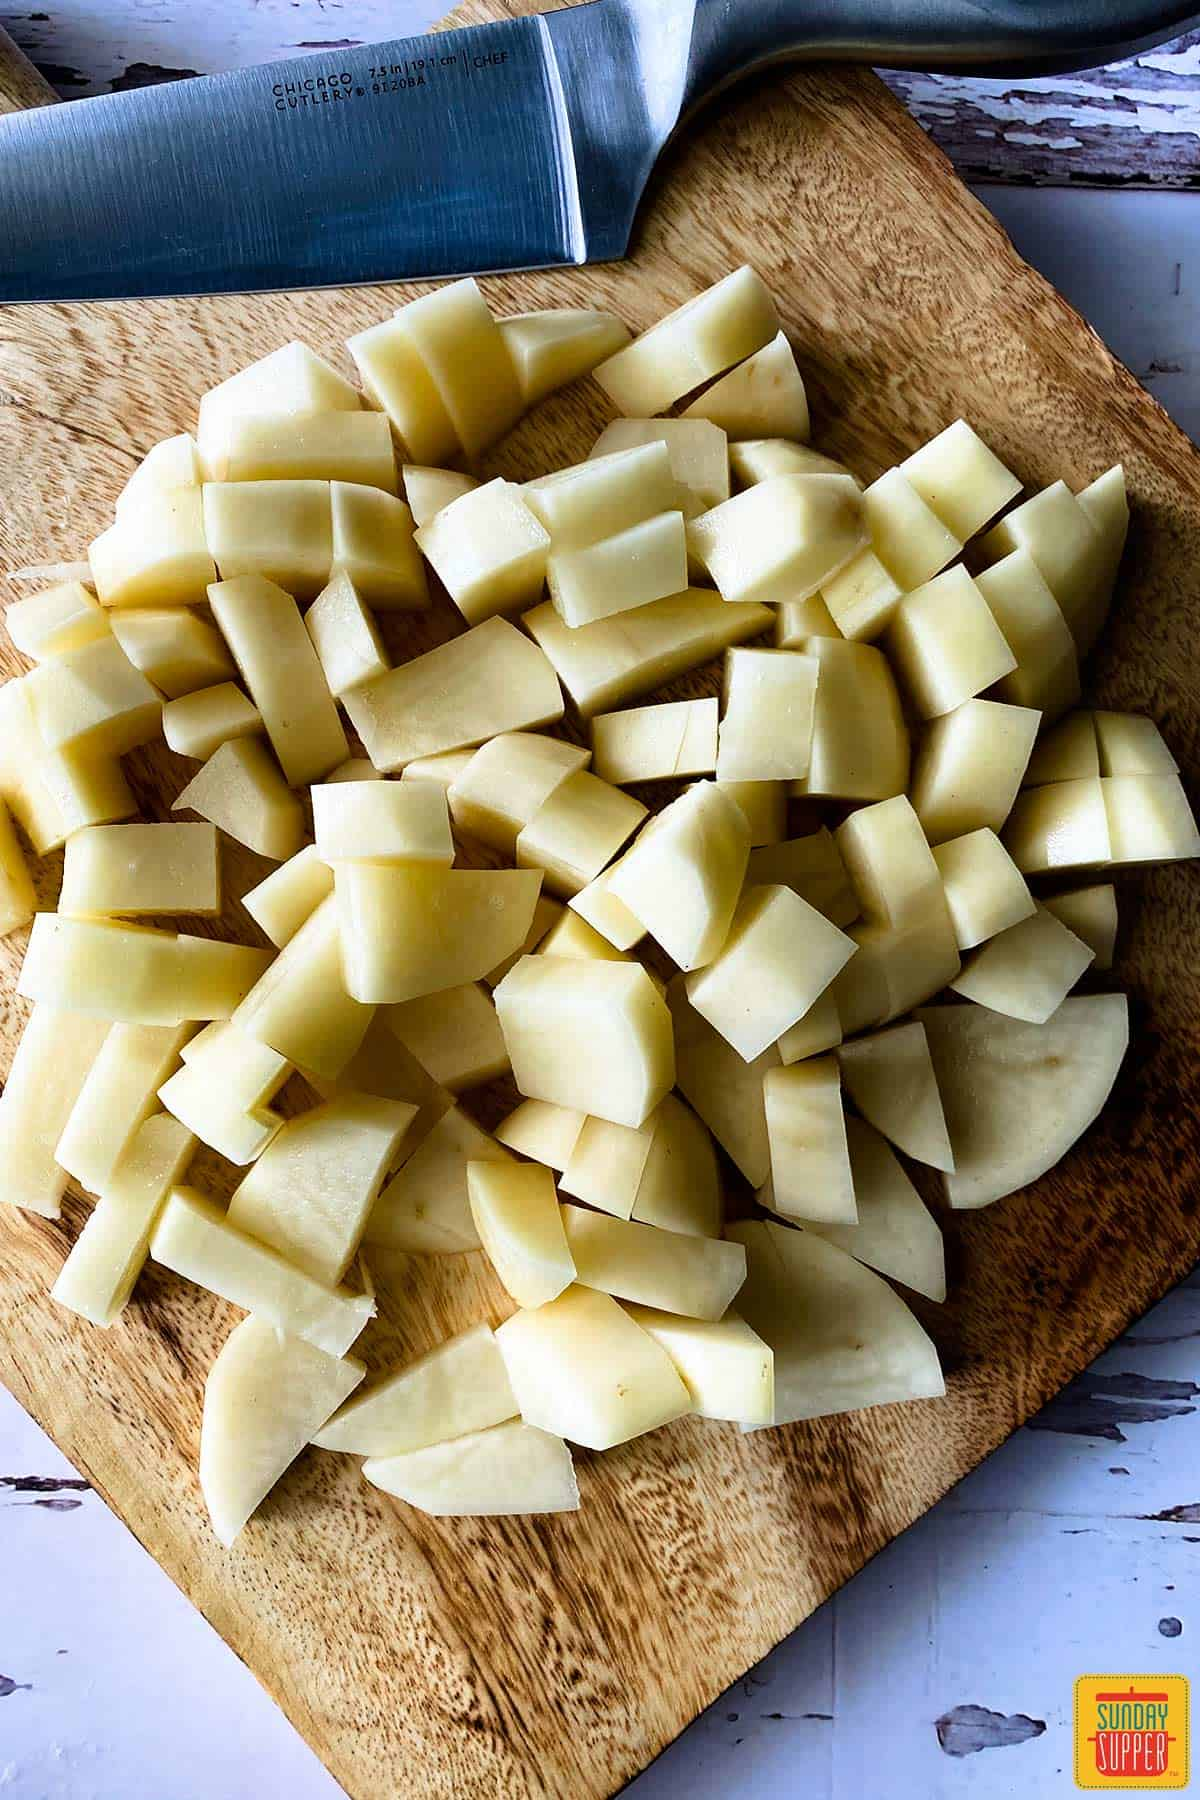 russet potatoes diced on a cutting board